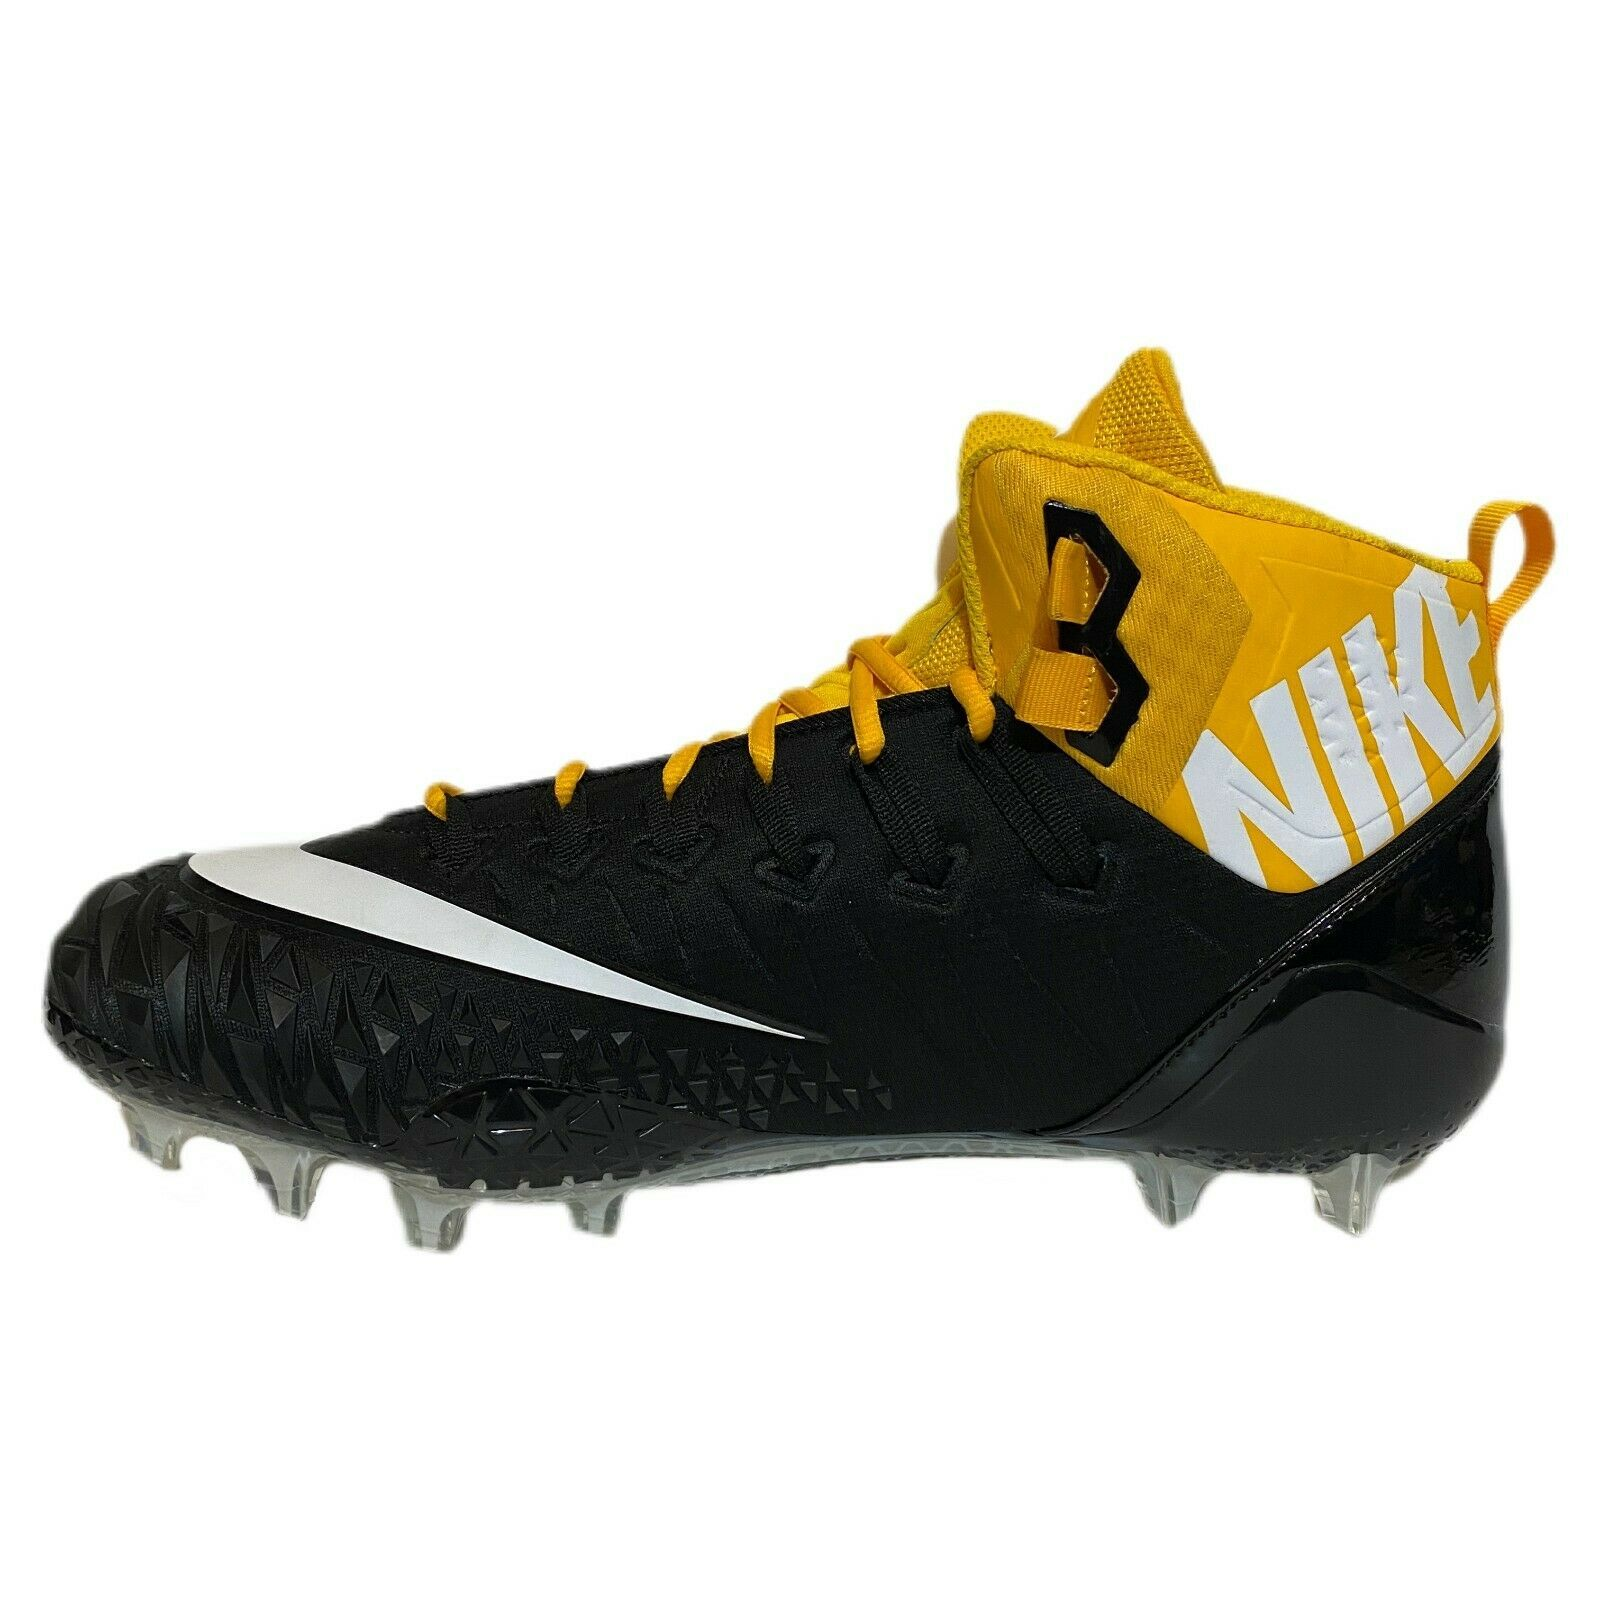 Primary image for Nike Force Savage Pro Elite TD Football Cleats Black Yellow AJ6605-006 Size 15